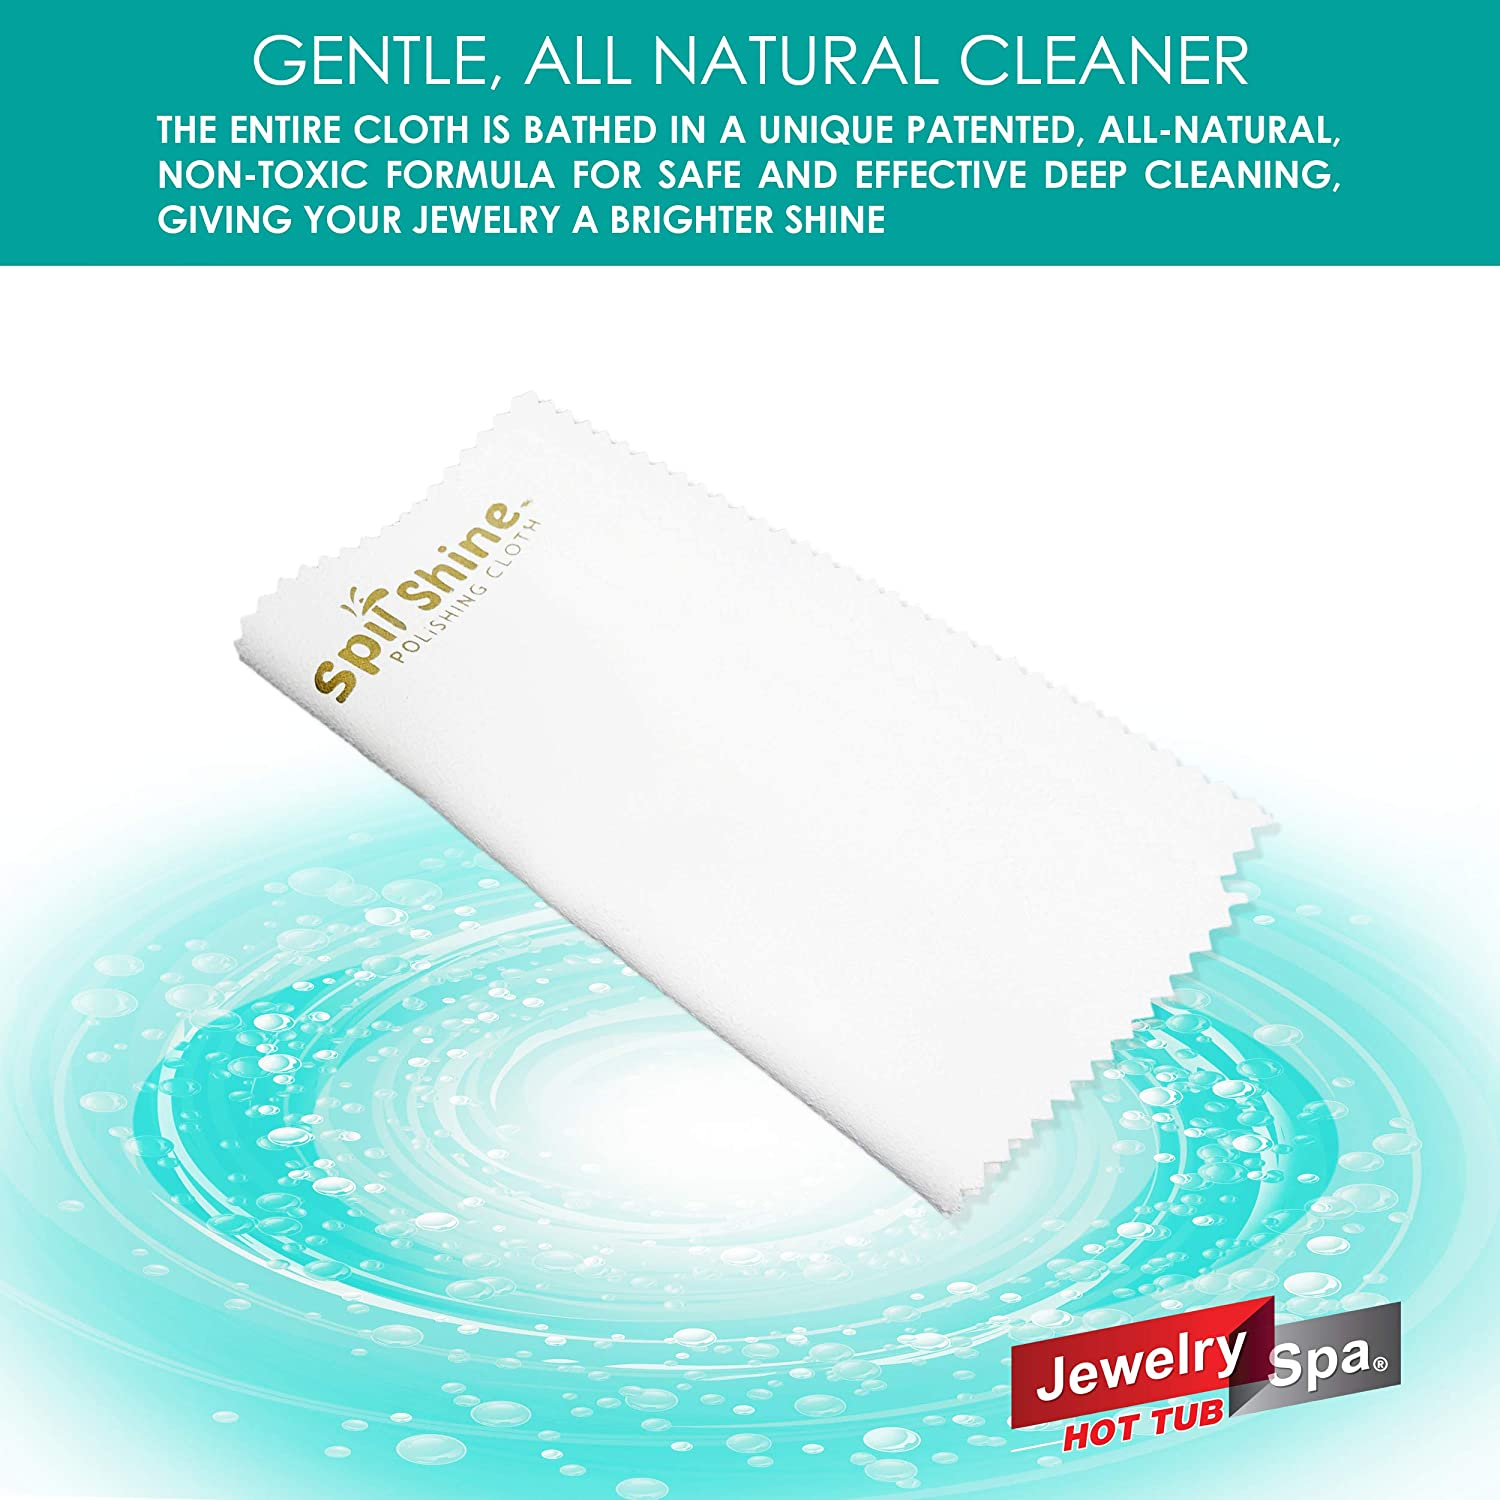 Silver 8 x 8 inches Copper Patented Naturally-Based Formula Jewelry Spa Spit Shine Jewelry Cleaning Cloth Brass - for Use to Polish Gold Silverware